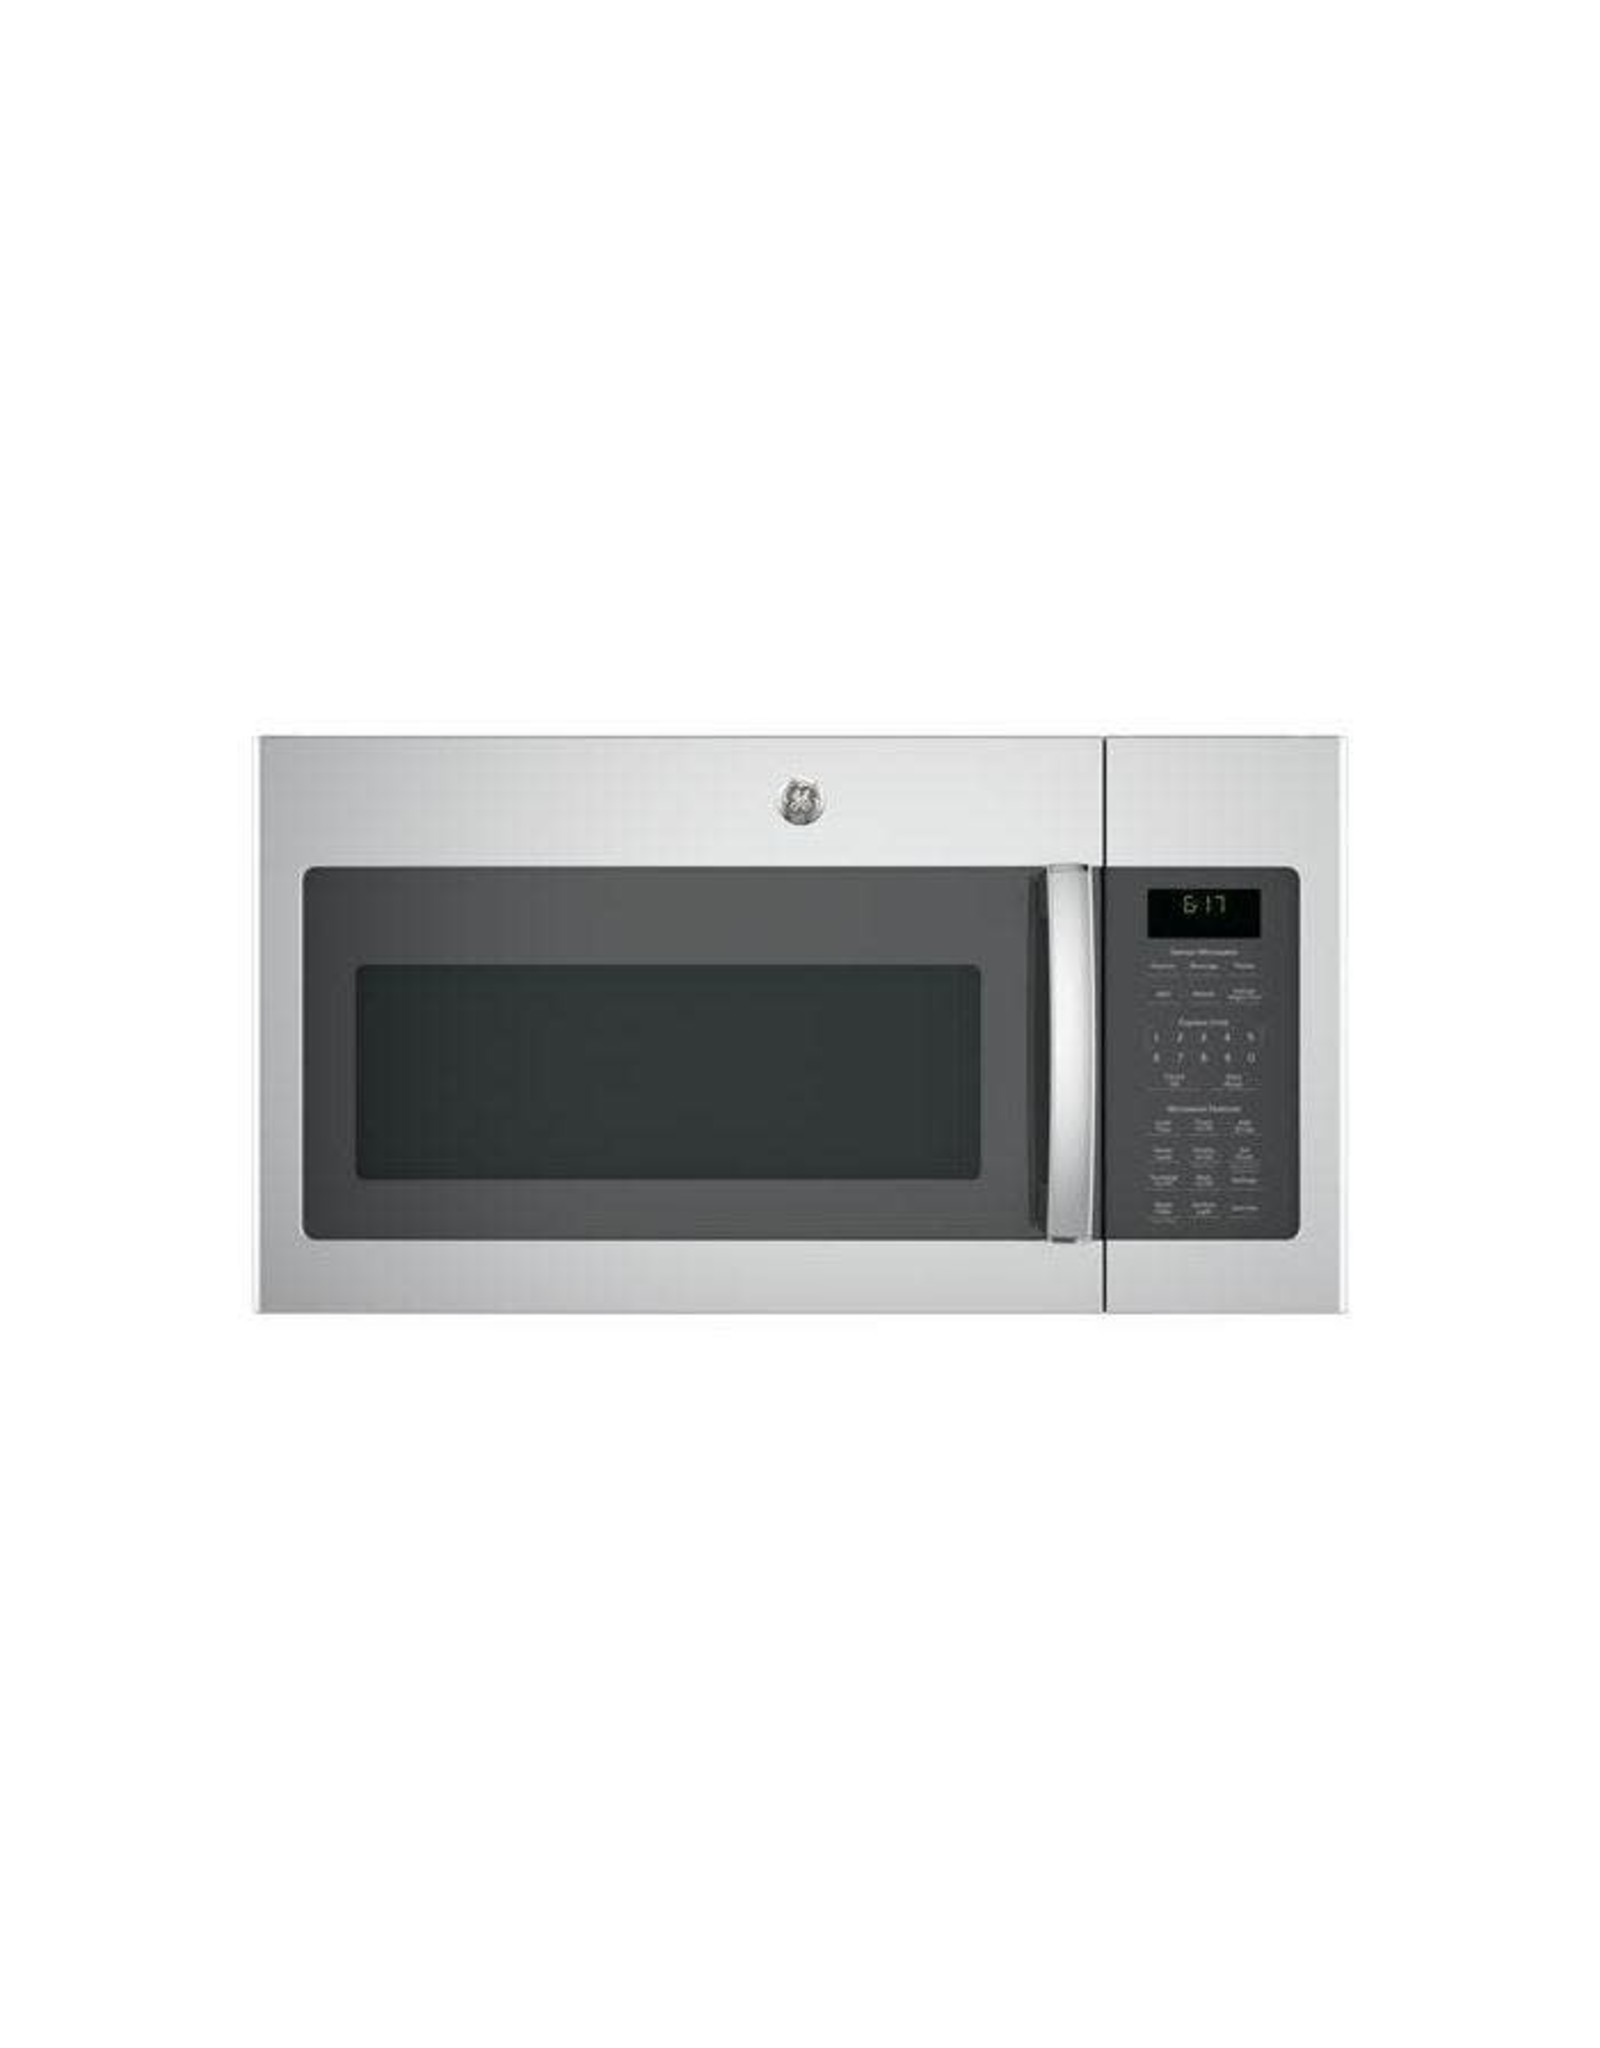 GE GE 1.7 cu. ft. Over the Range Microwave with Sensor Cooking in Stainless Steel